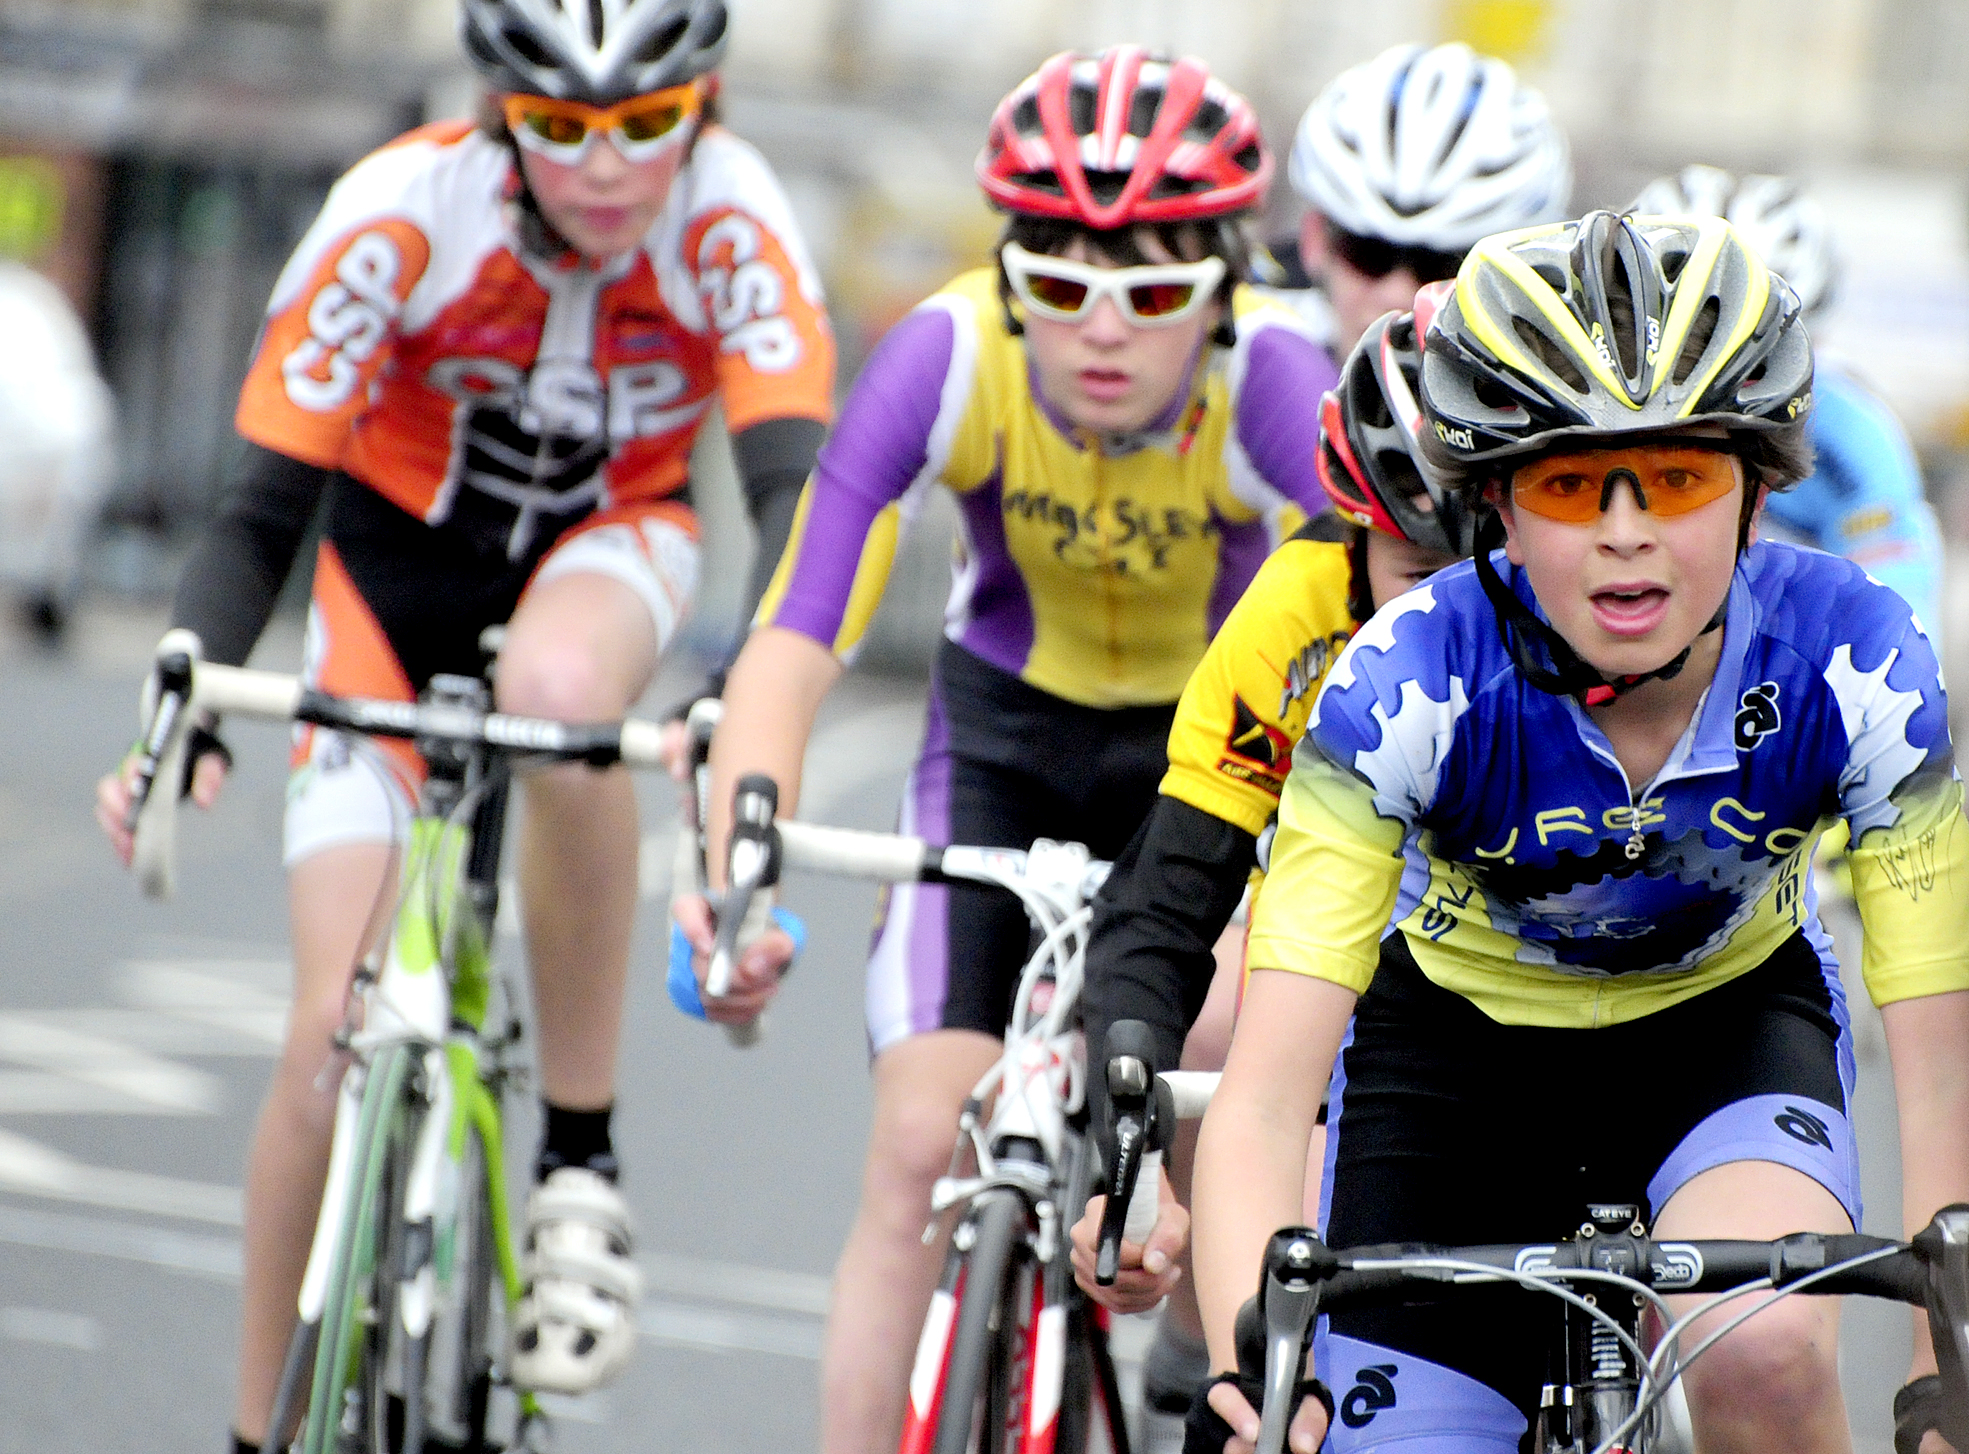 The Bolton Arena Youth Cycle Races at the Horwich Festival of Racing in 2012